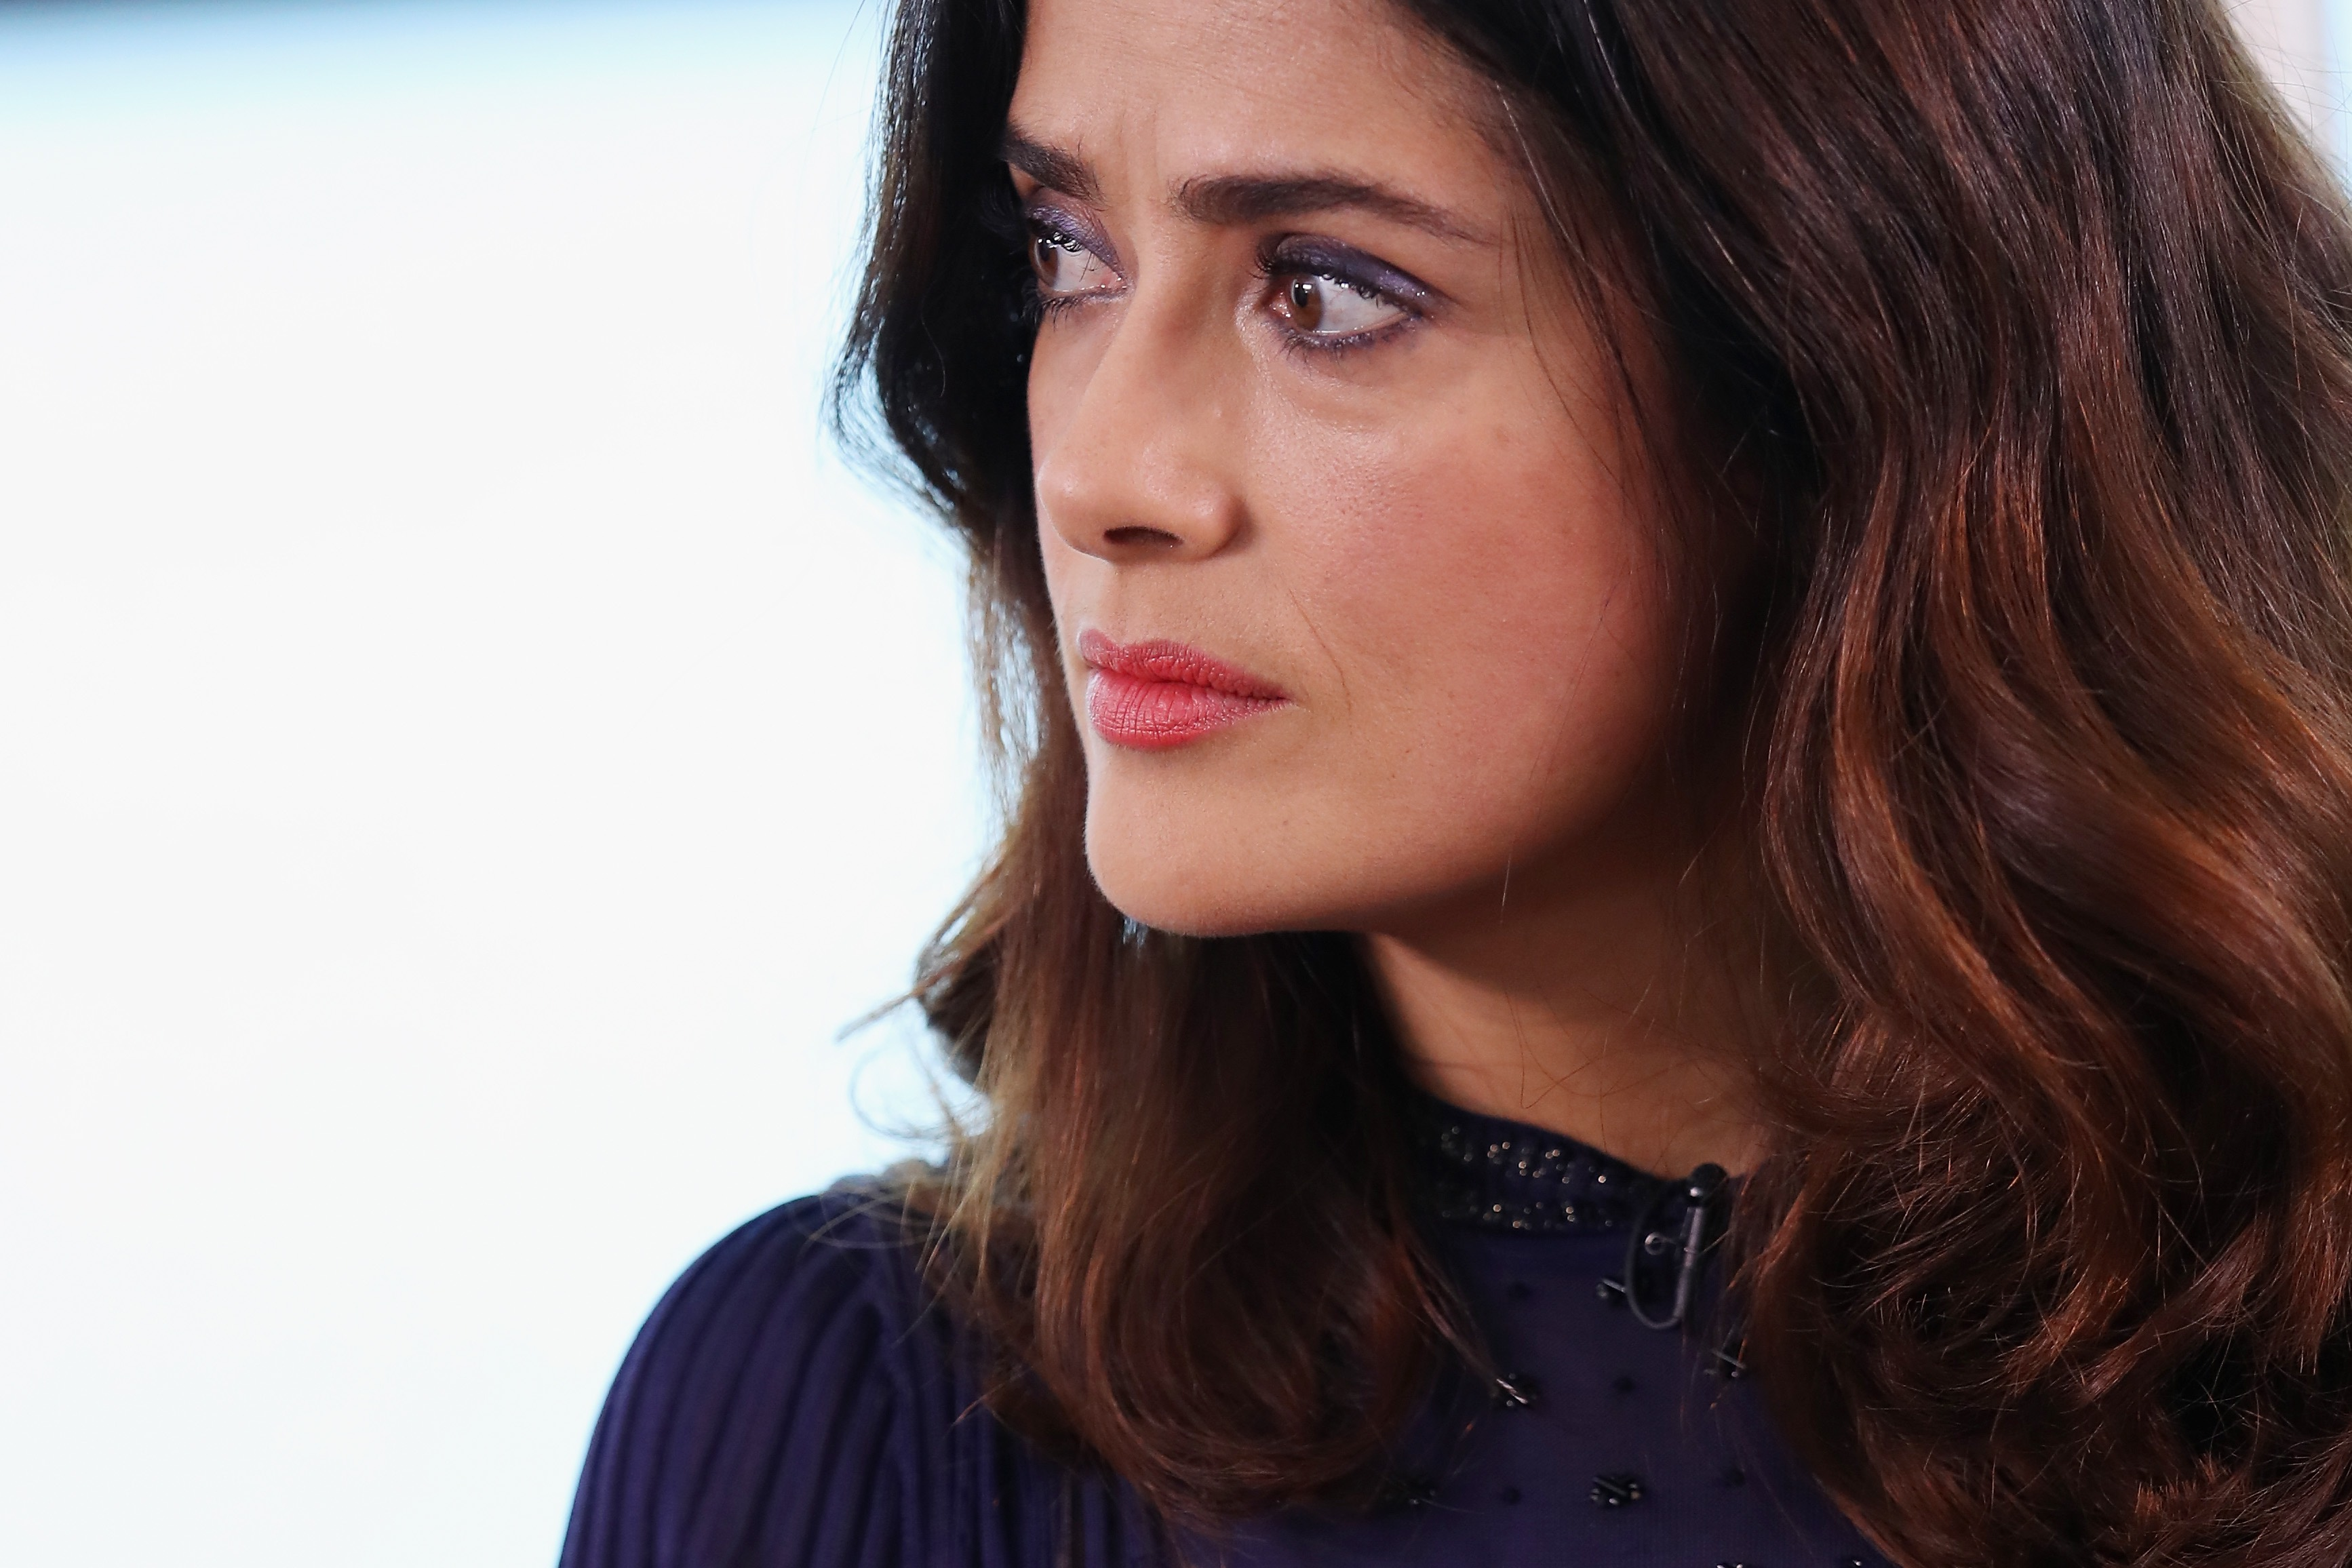 Salma Hayek Speaks Out Against the Controversial Frida Kahlo Barbie Doll